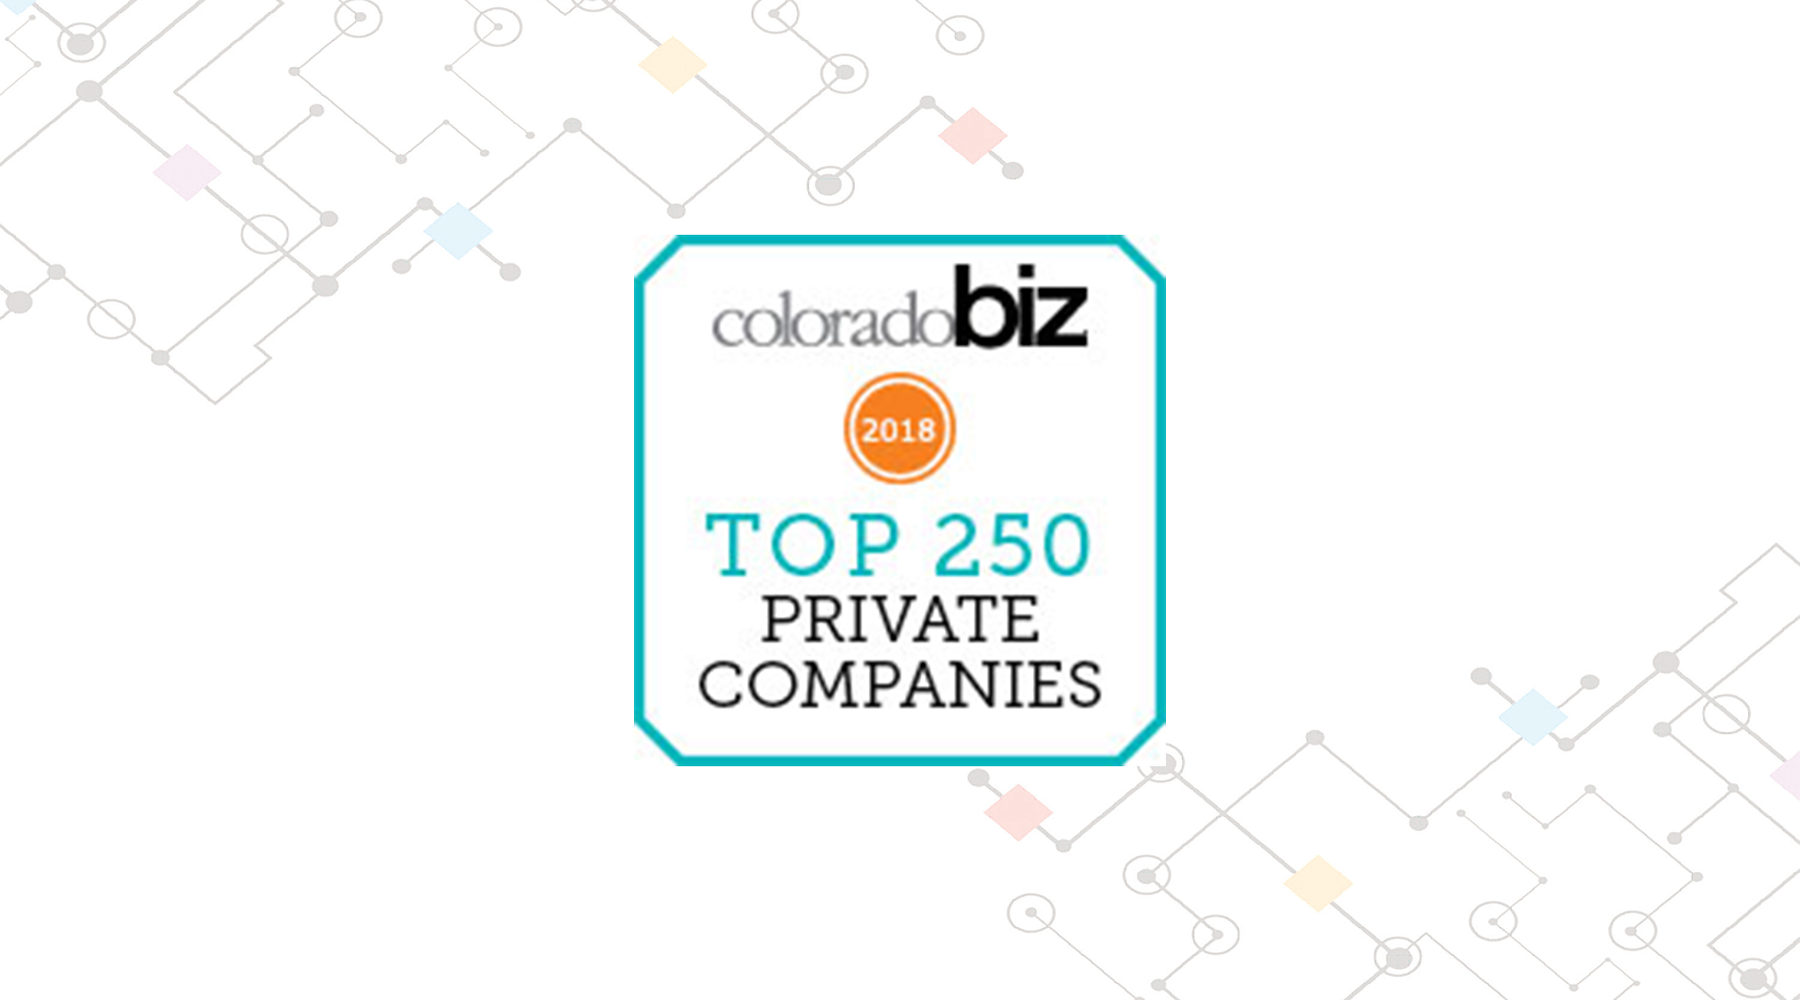 ColoradoBiz Top 250 Private Companies 2018